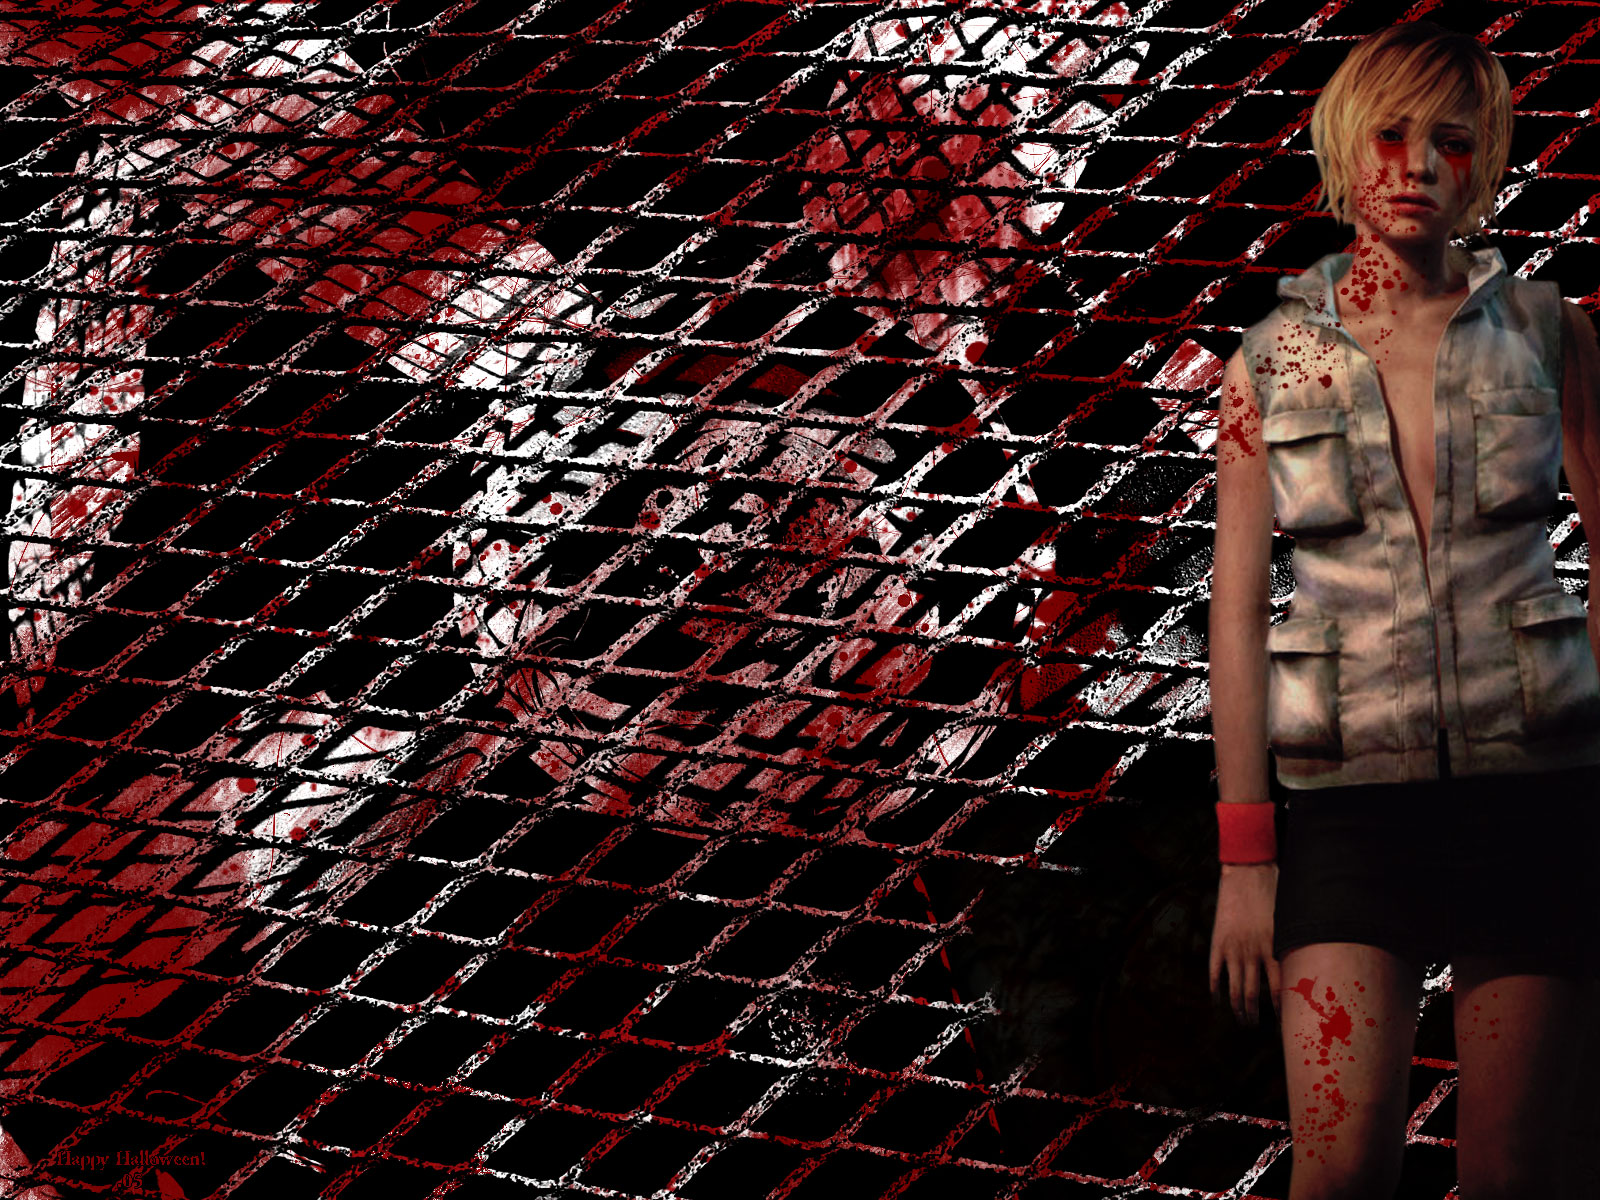 Silent Hill 3 wallpaper again by Fridays Garnet 1600x1200